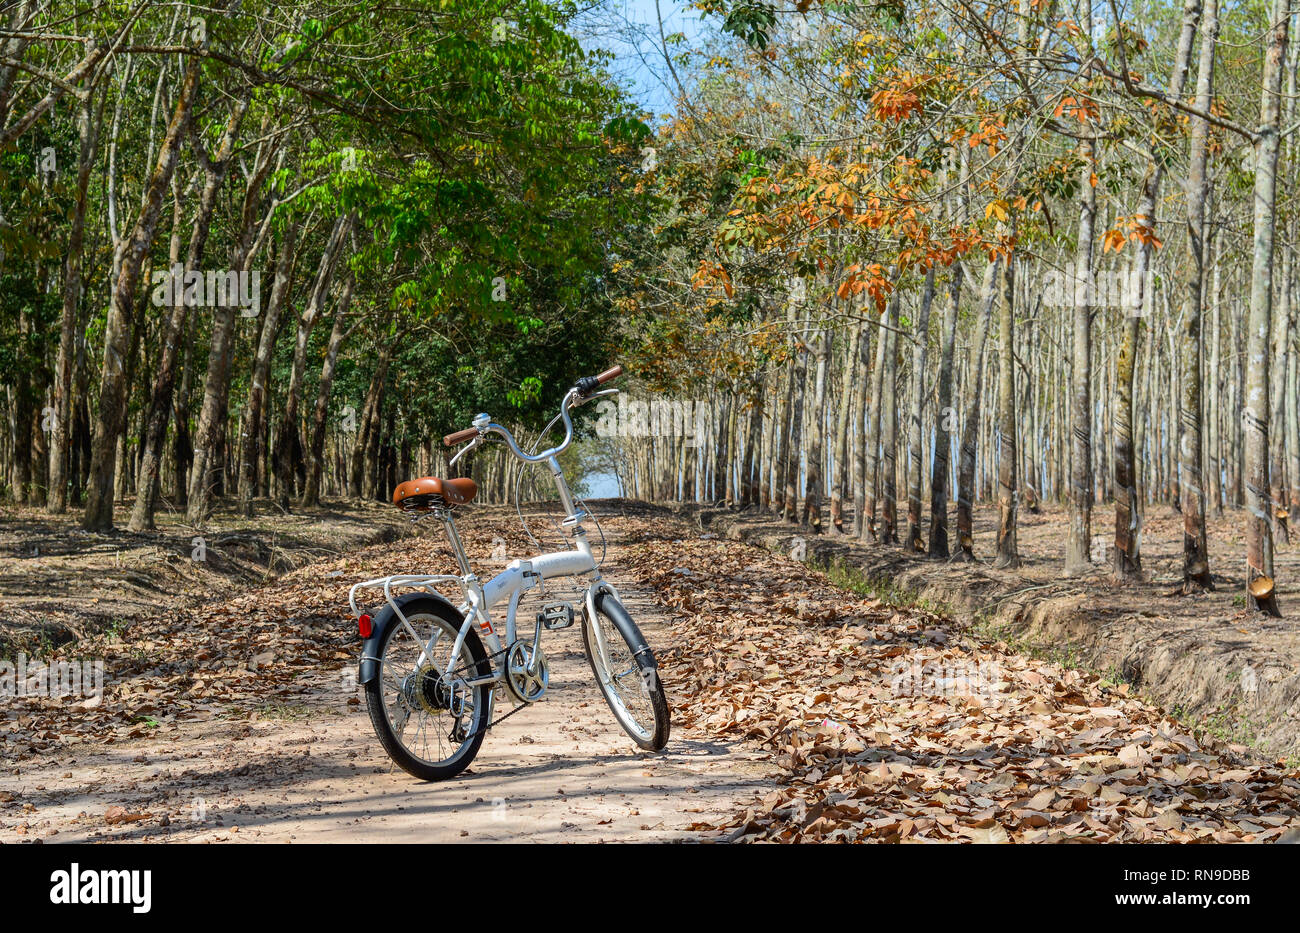 Dong Nai, Vietnam - Feb 4, 2016. A bike parking at rubber forest at sunny day in spring time. - Stock Image